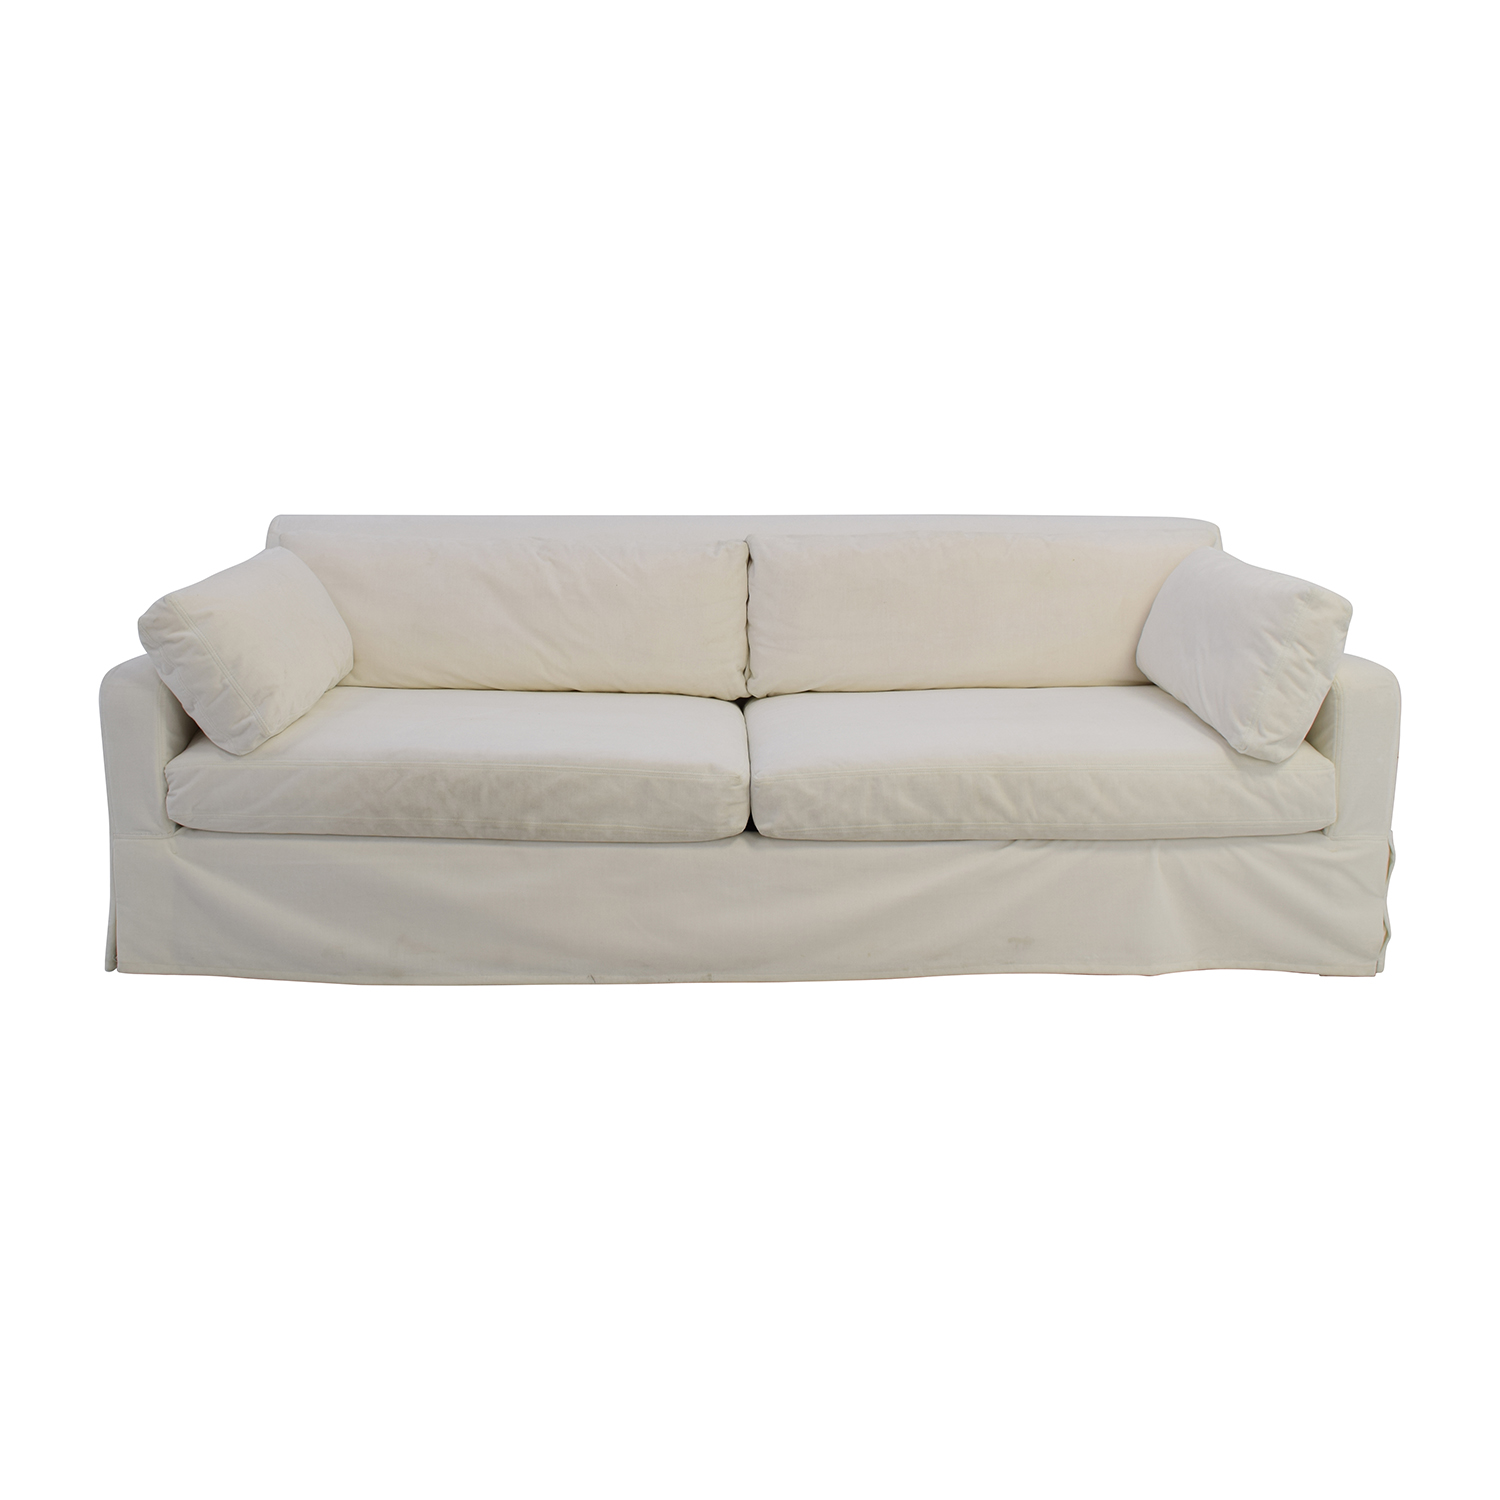 Restoration Hardware Slope Arm White Sofa / Sofas